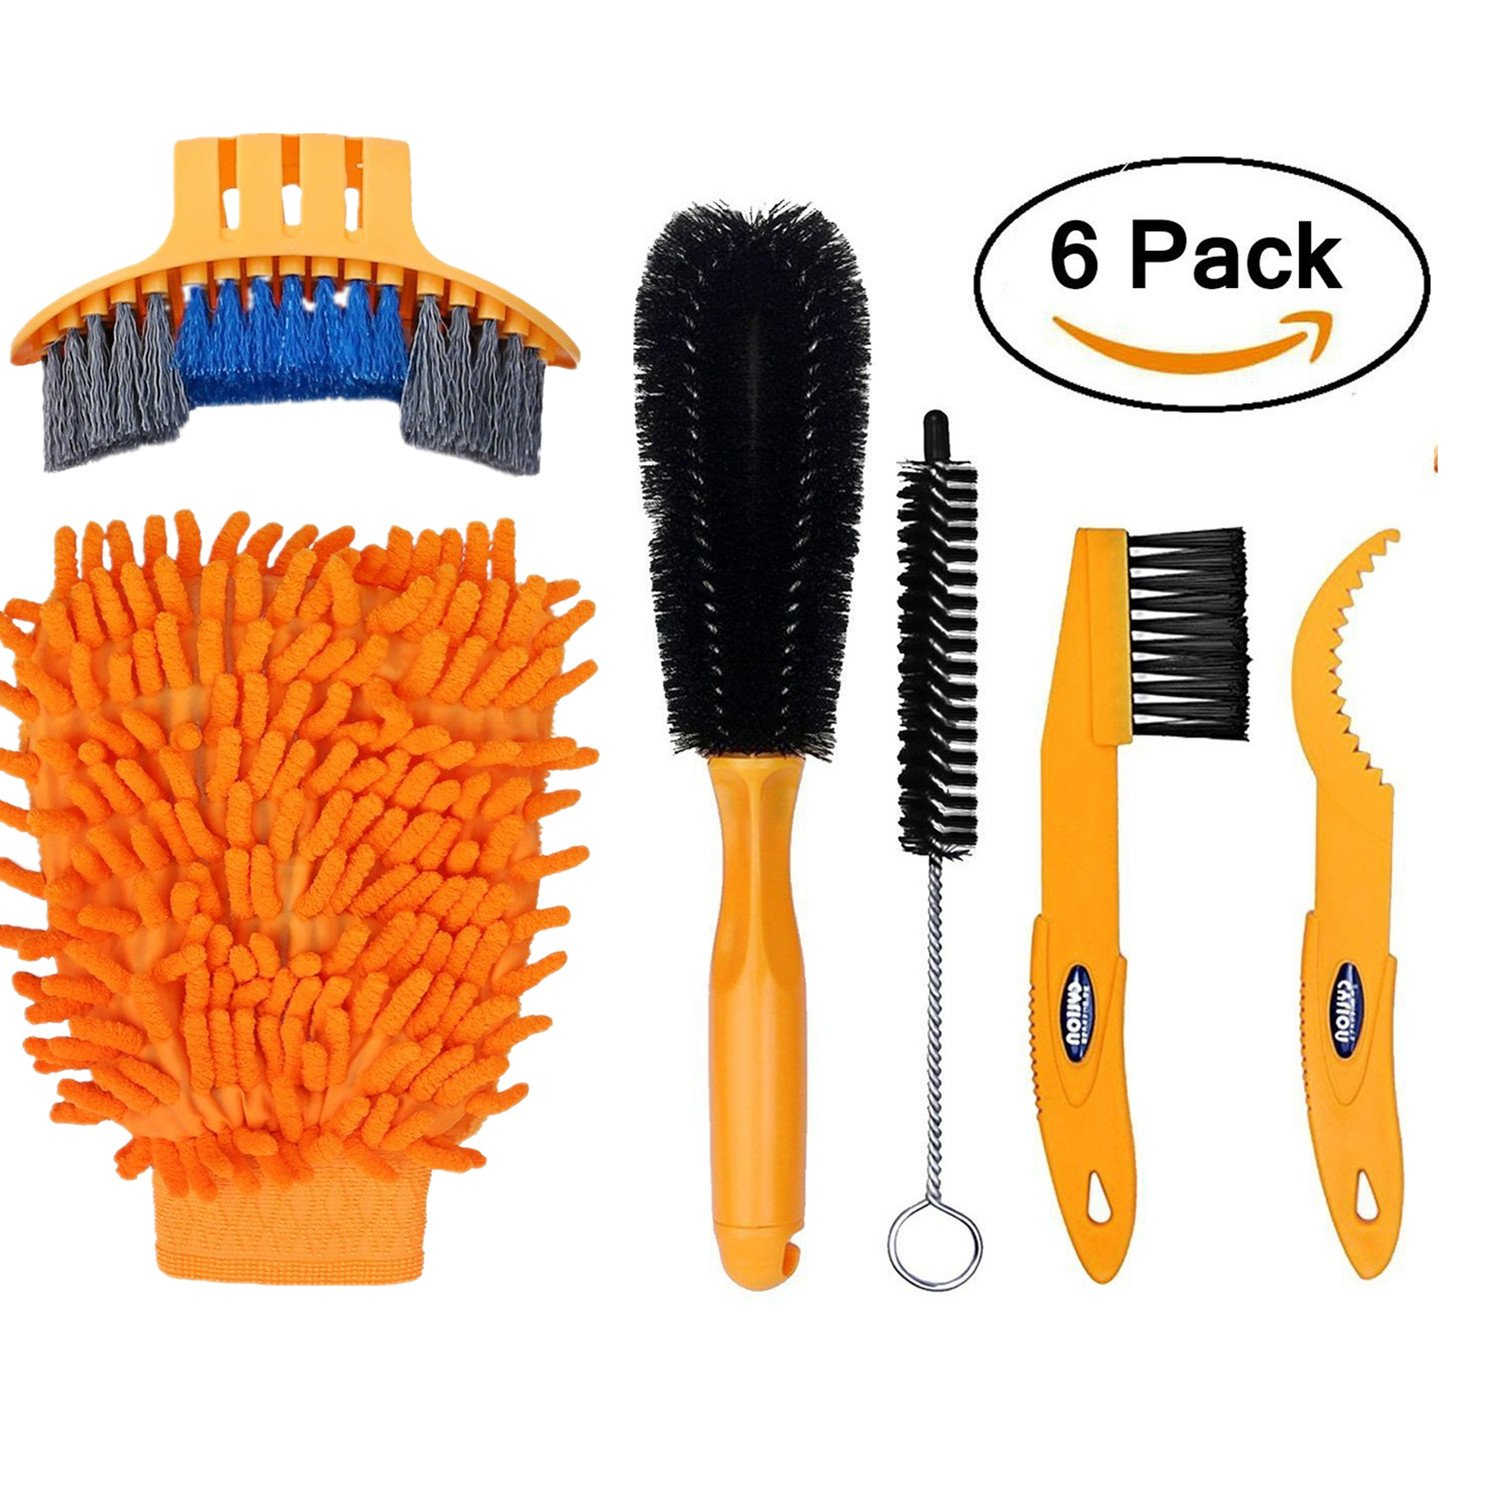 DOCA Bike Cleaning Brush Tool Kit Set - 6 Pack Bicycle Chain Cleaner Cycling Clean Tire Brushes for Mountain,Road,City,Hybrid,BMX Bike and Folding Bike